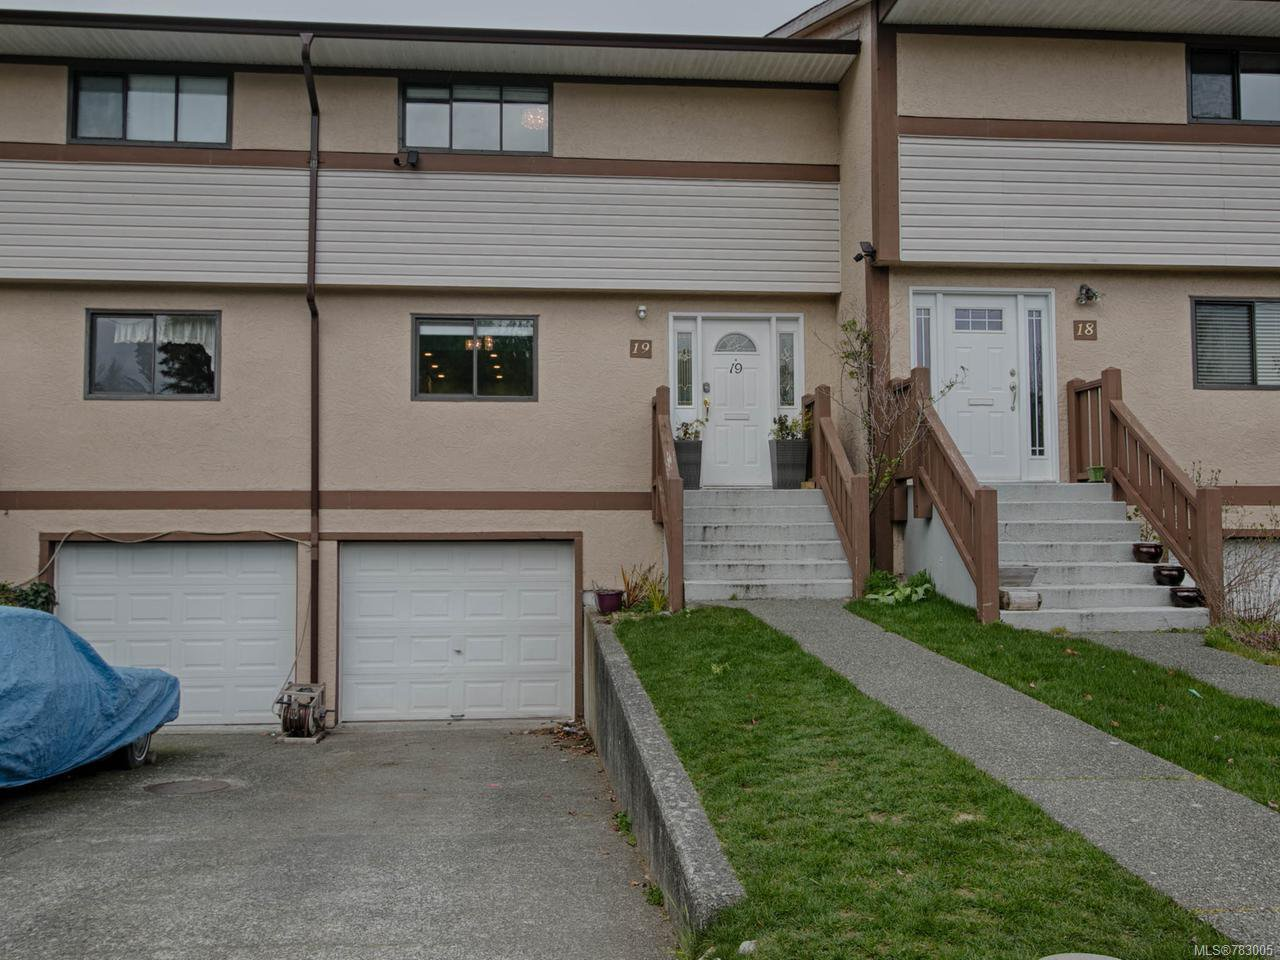 Main Photo: 19 500 Colwyn St in CAMPBELL RIVER: CR Campbell River Central Row/Townhouse for sale (Campbell River)  : MLS®# 783005